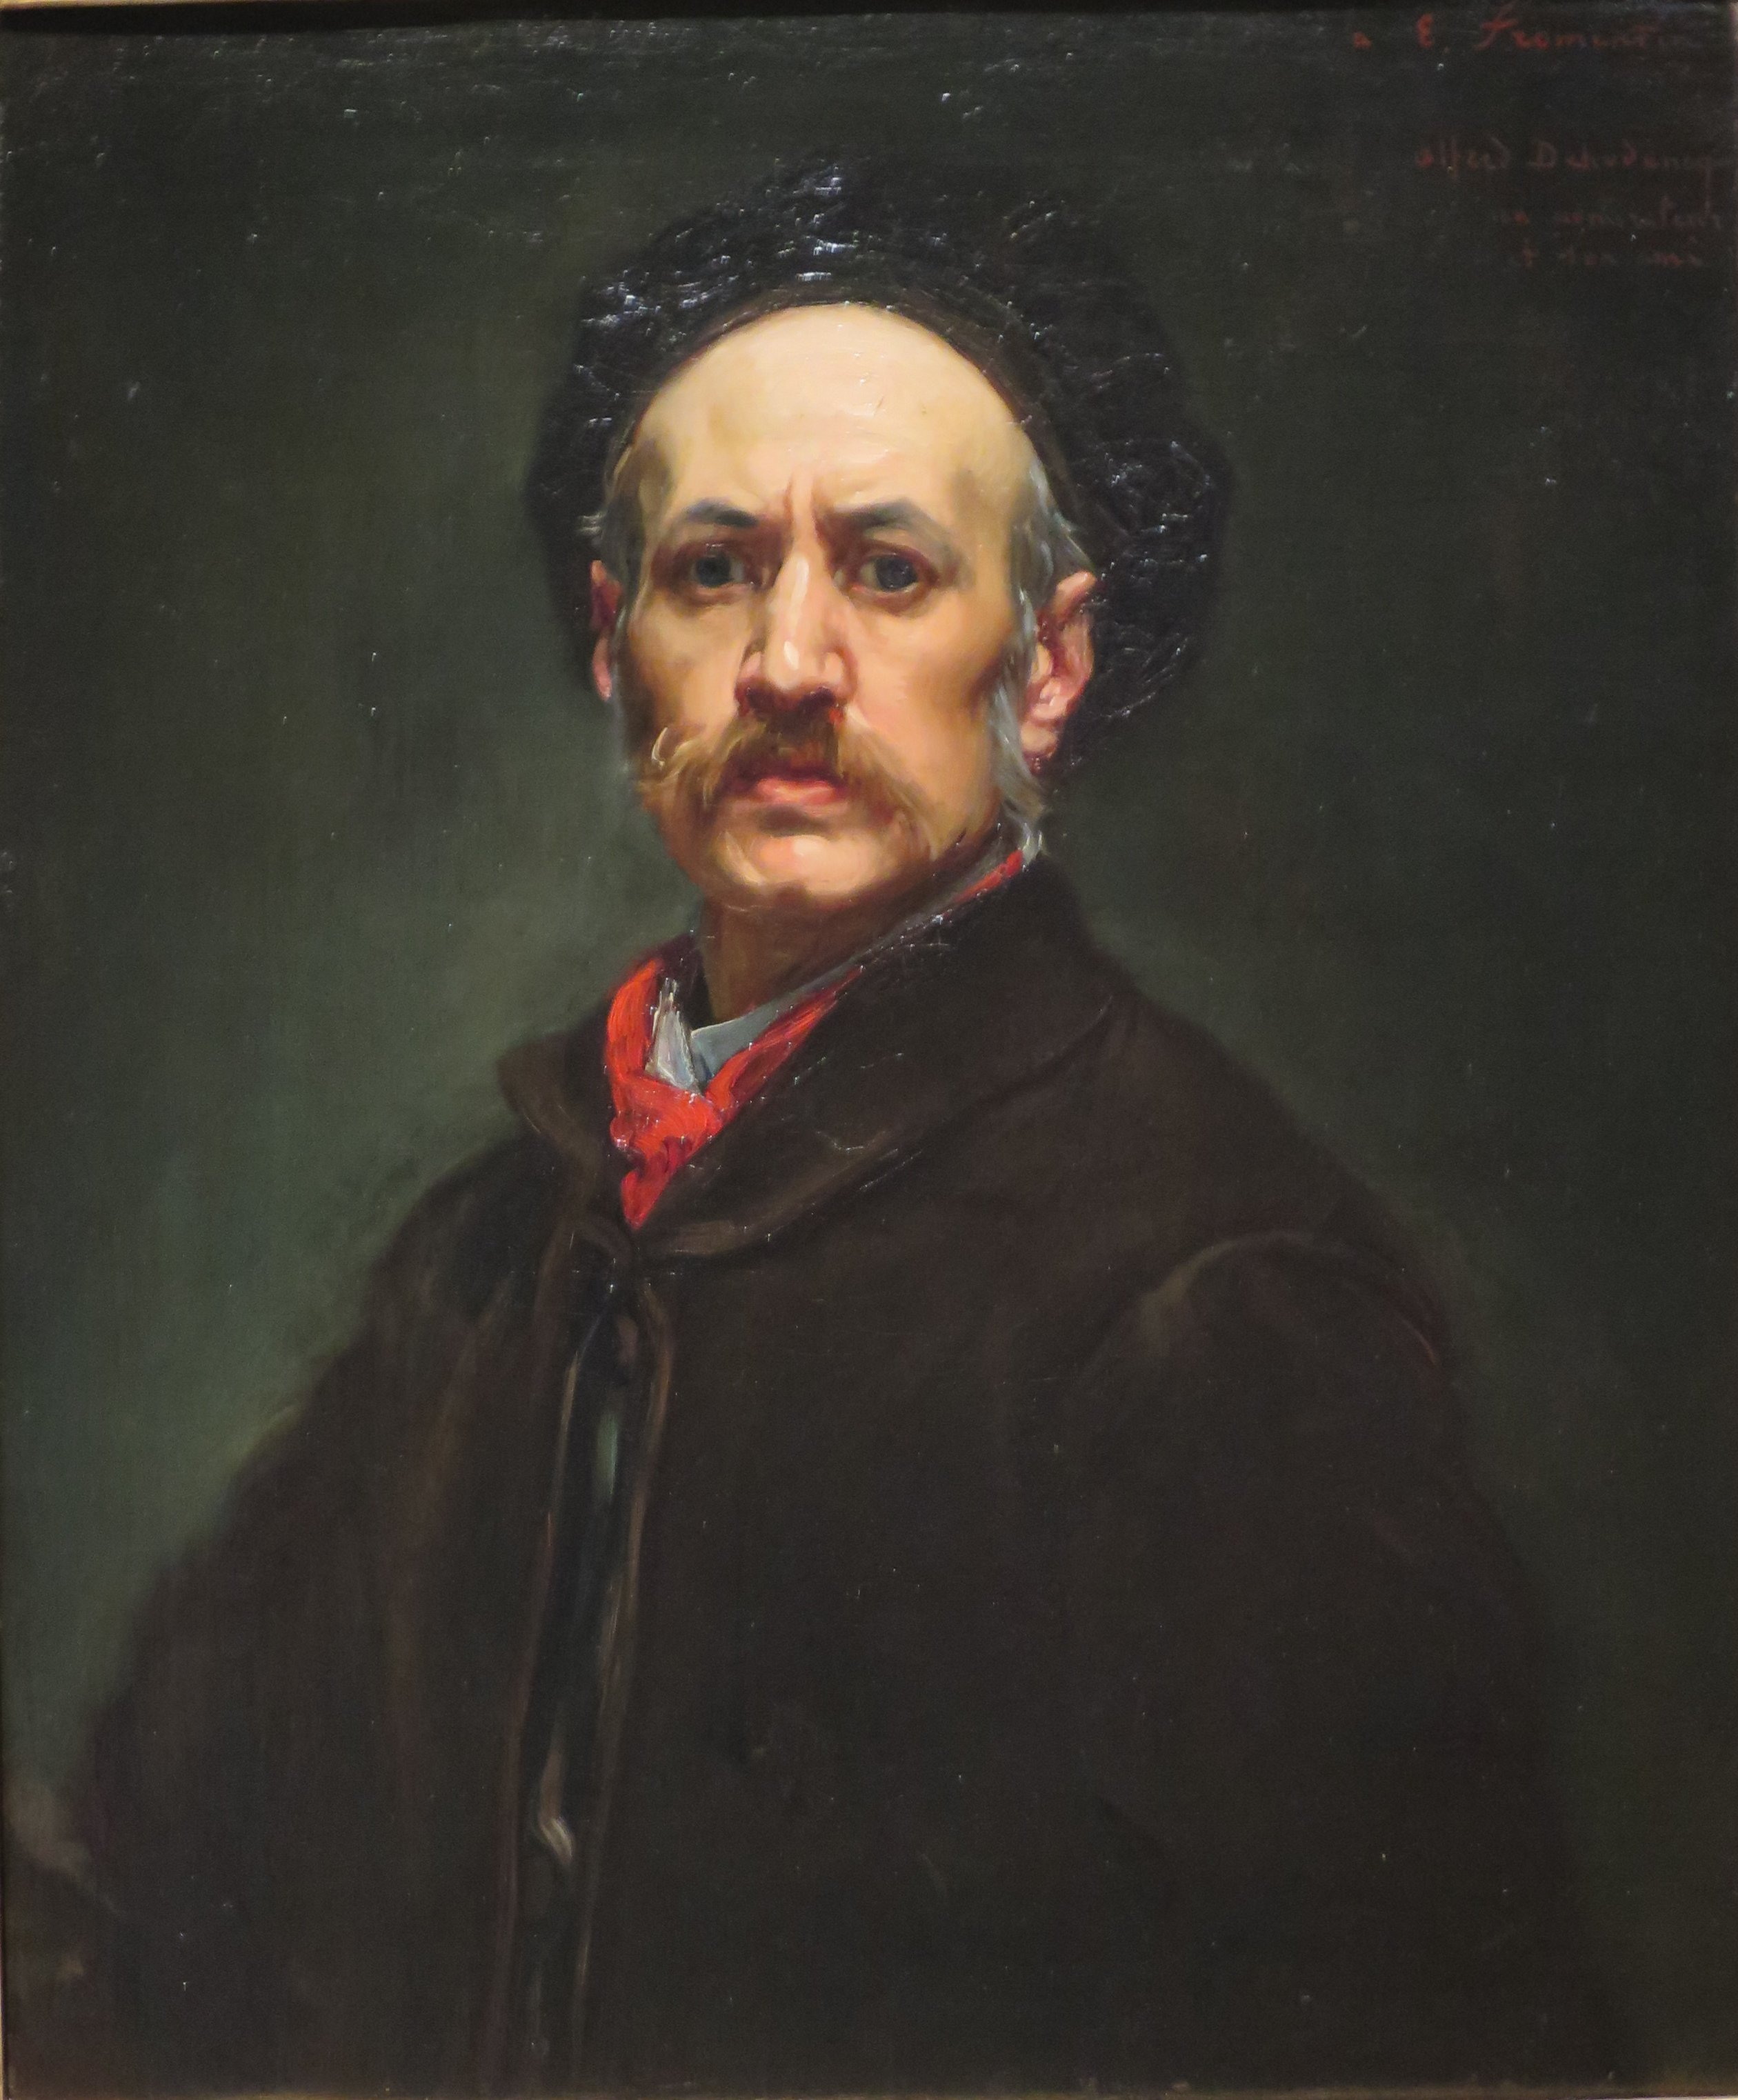 Figure 8. Alfred Dehodencq, Self Portrait, 1870, oil on canvas, High Museum of Art, Atlanta.